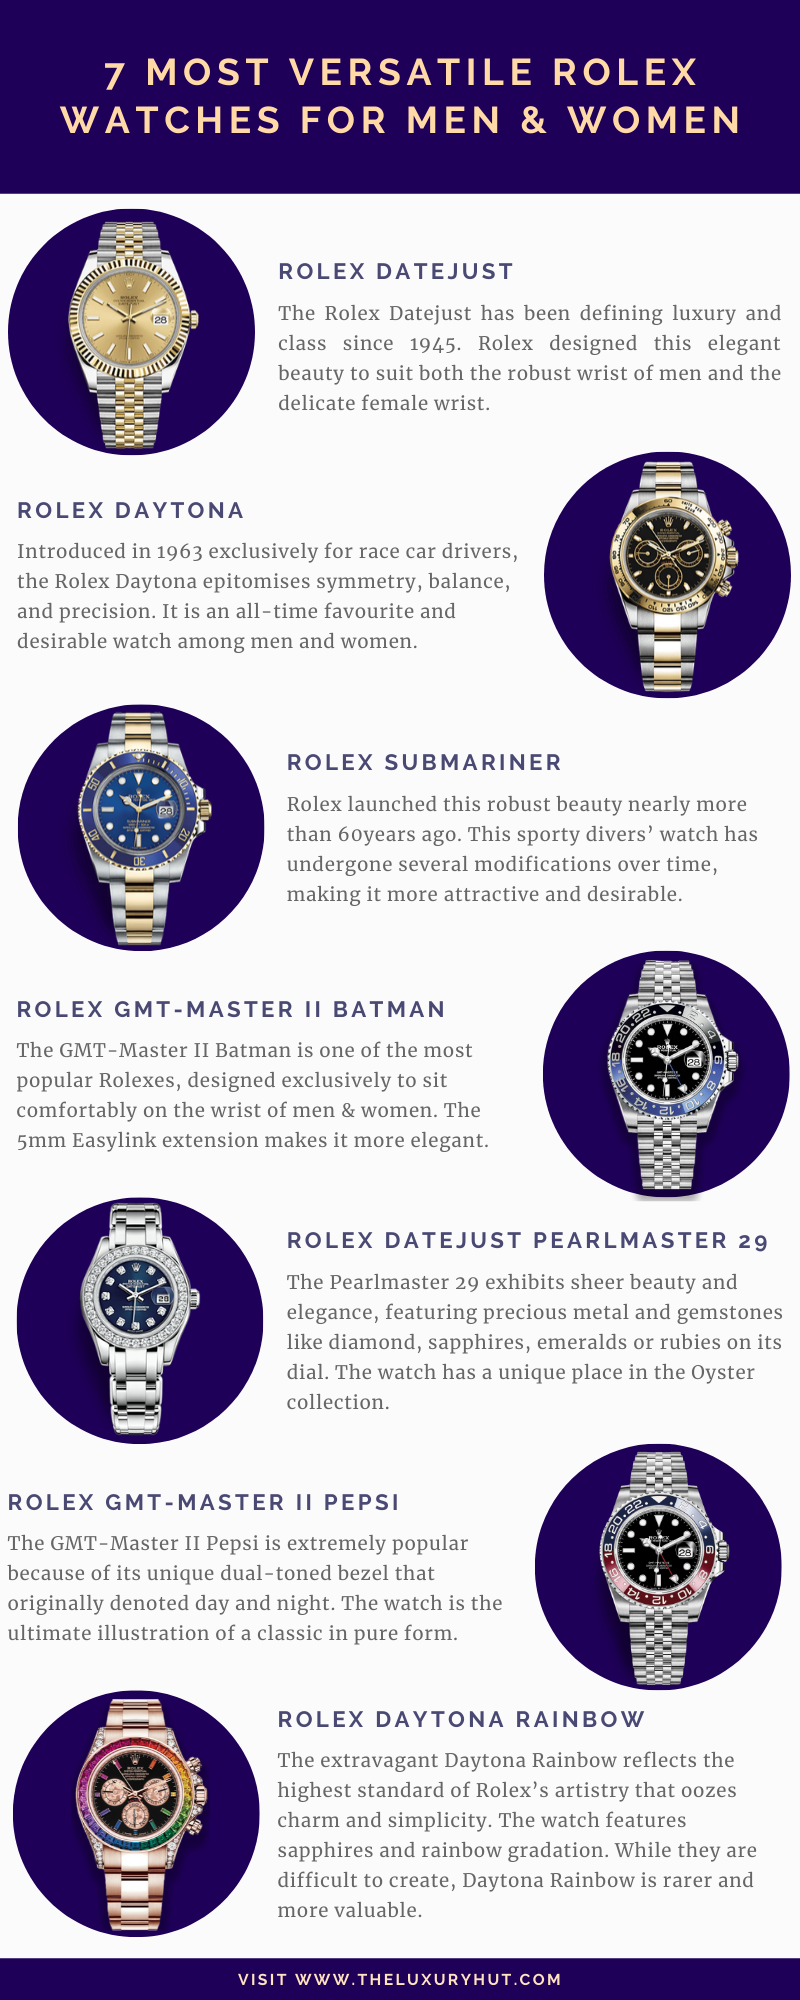 7 most versatile rolex watches for men and women